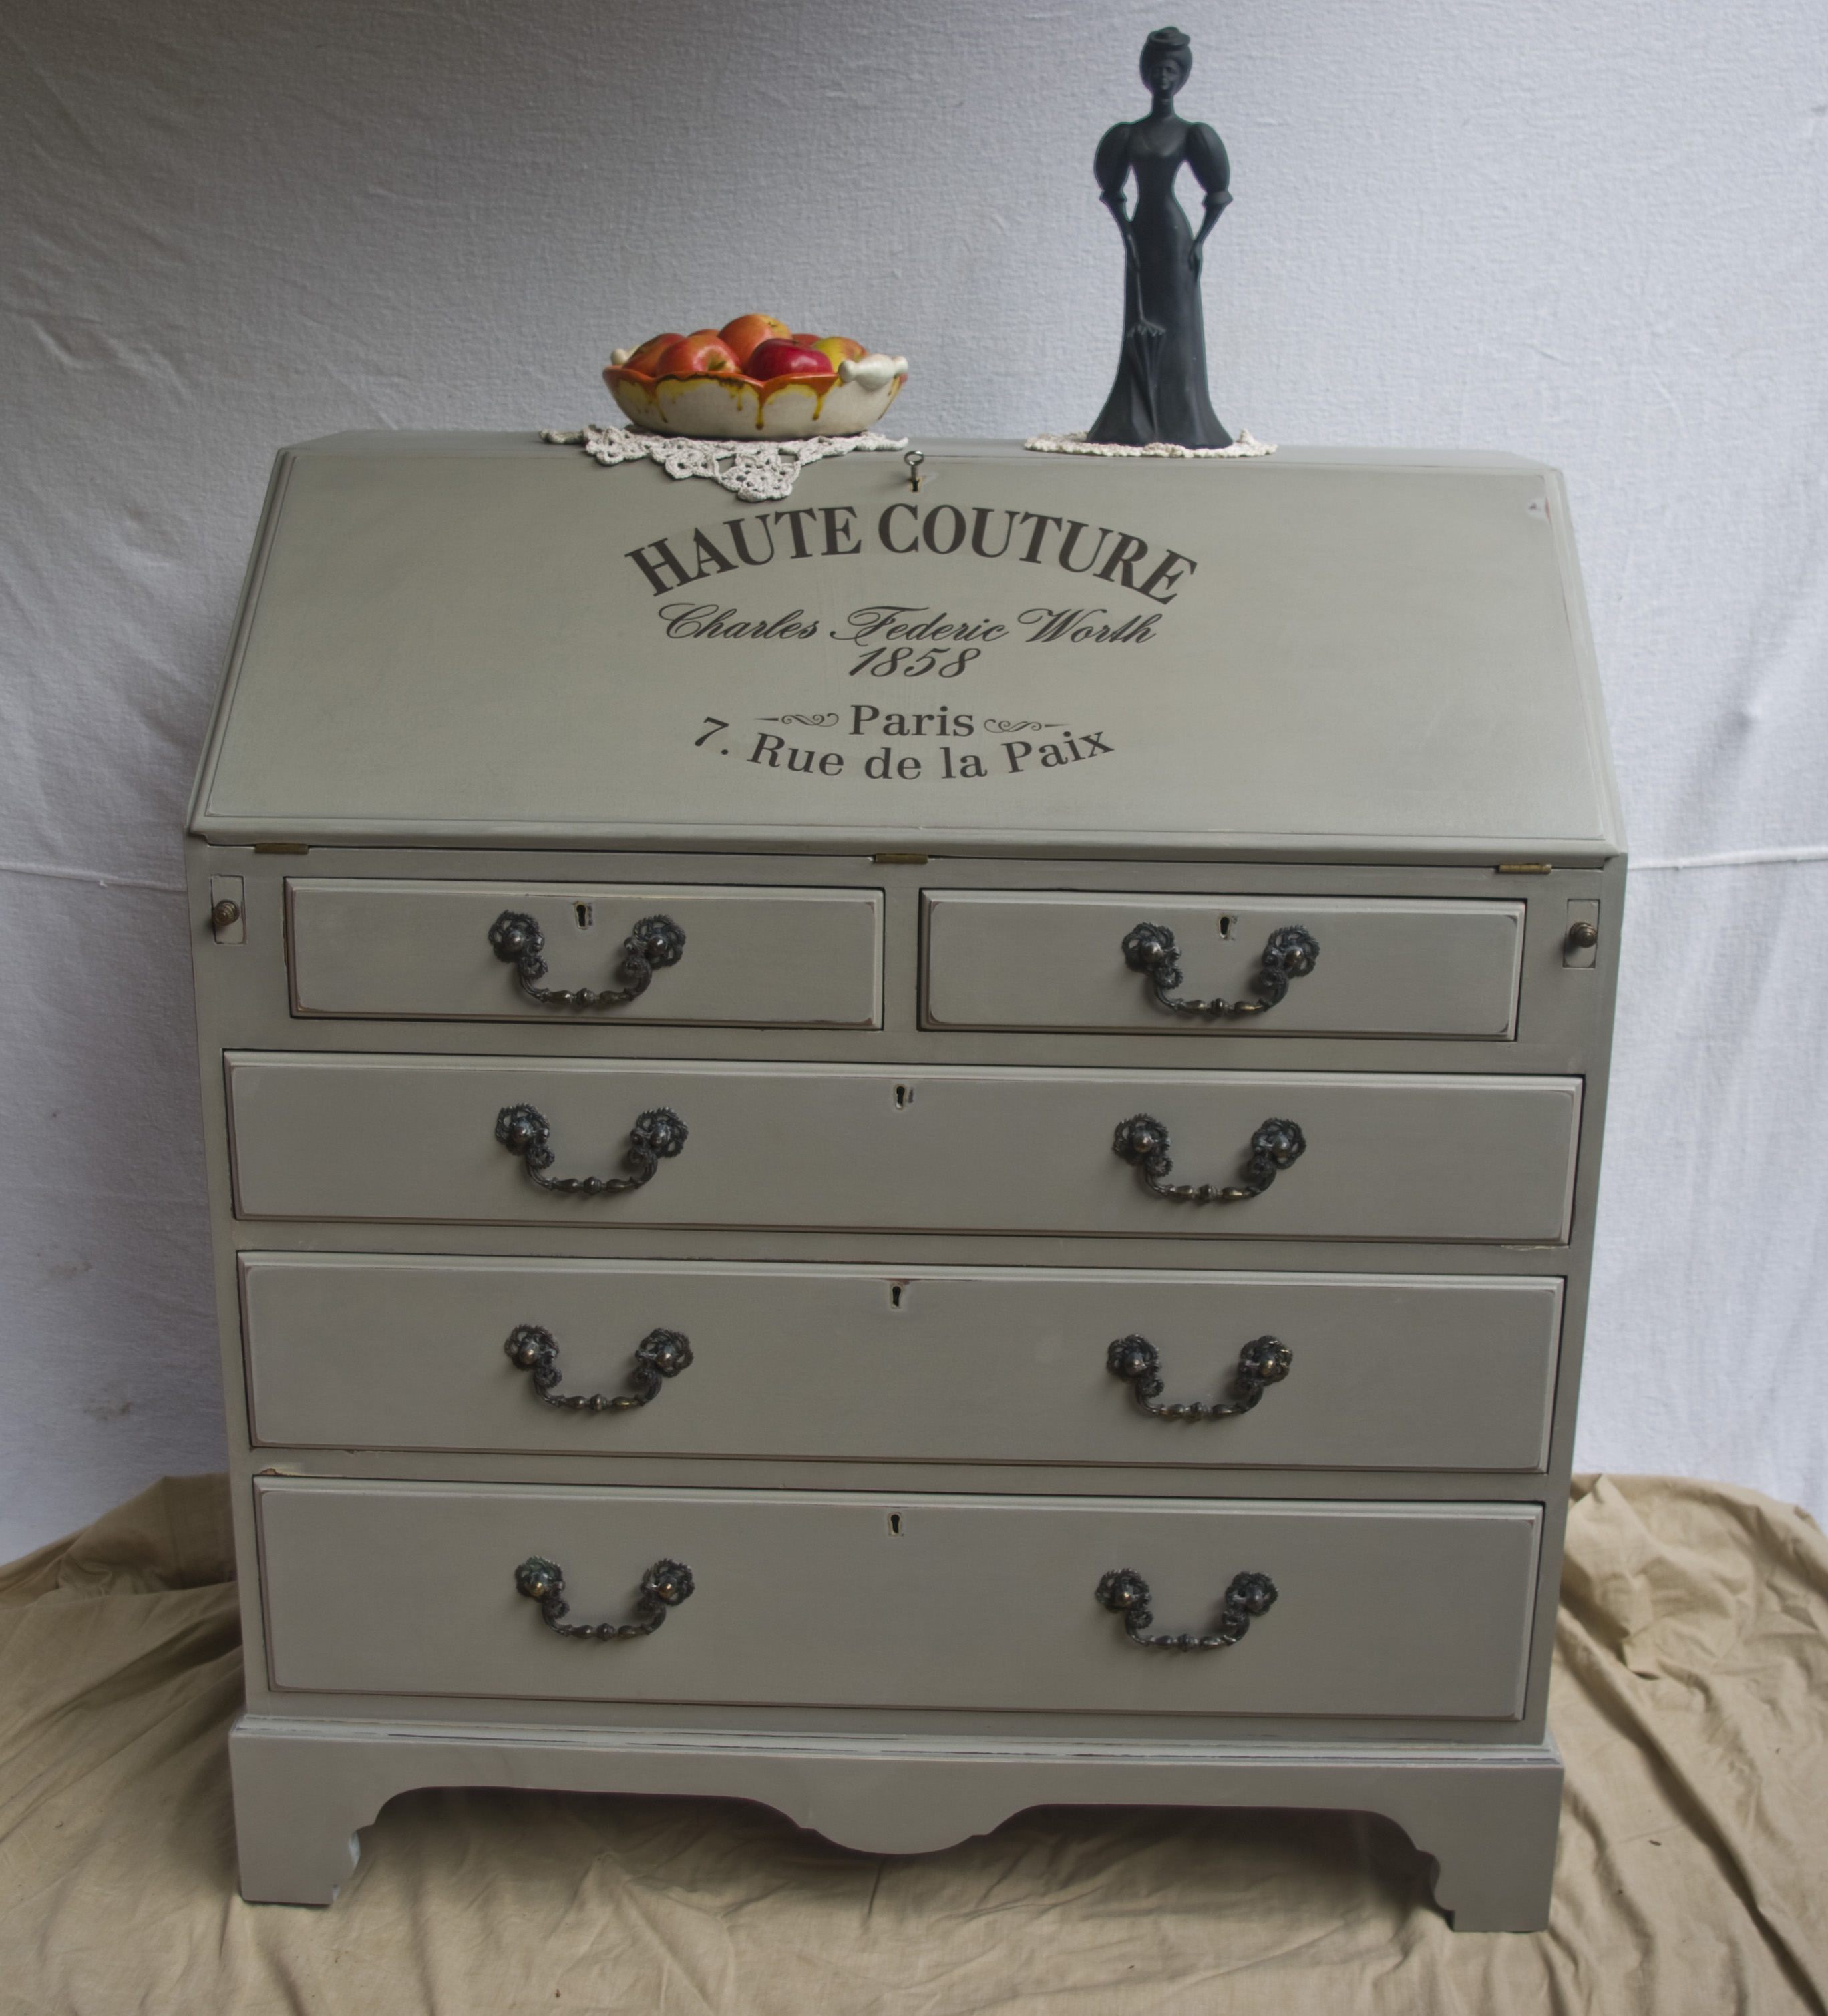 Ewg Social Share Radiummap together with Water Chestnut High Tide Night furthermore Digital City X in addition Gopr Moment further Antique Shabby Chic Bureau. on water data page